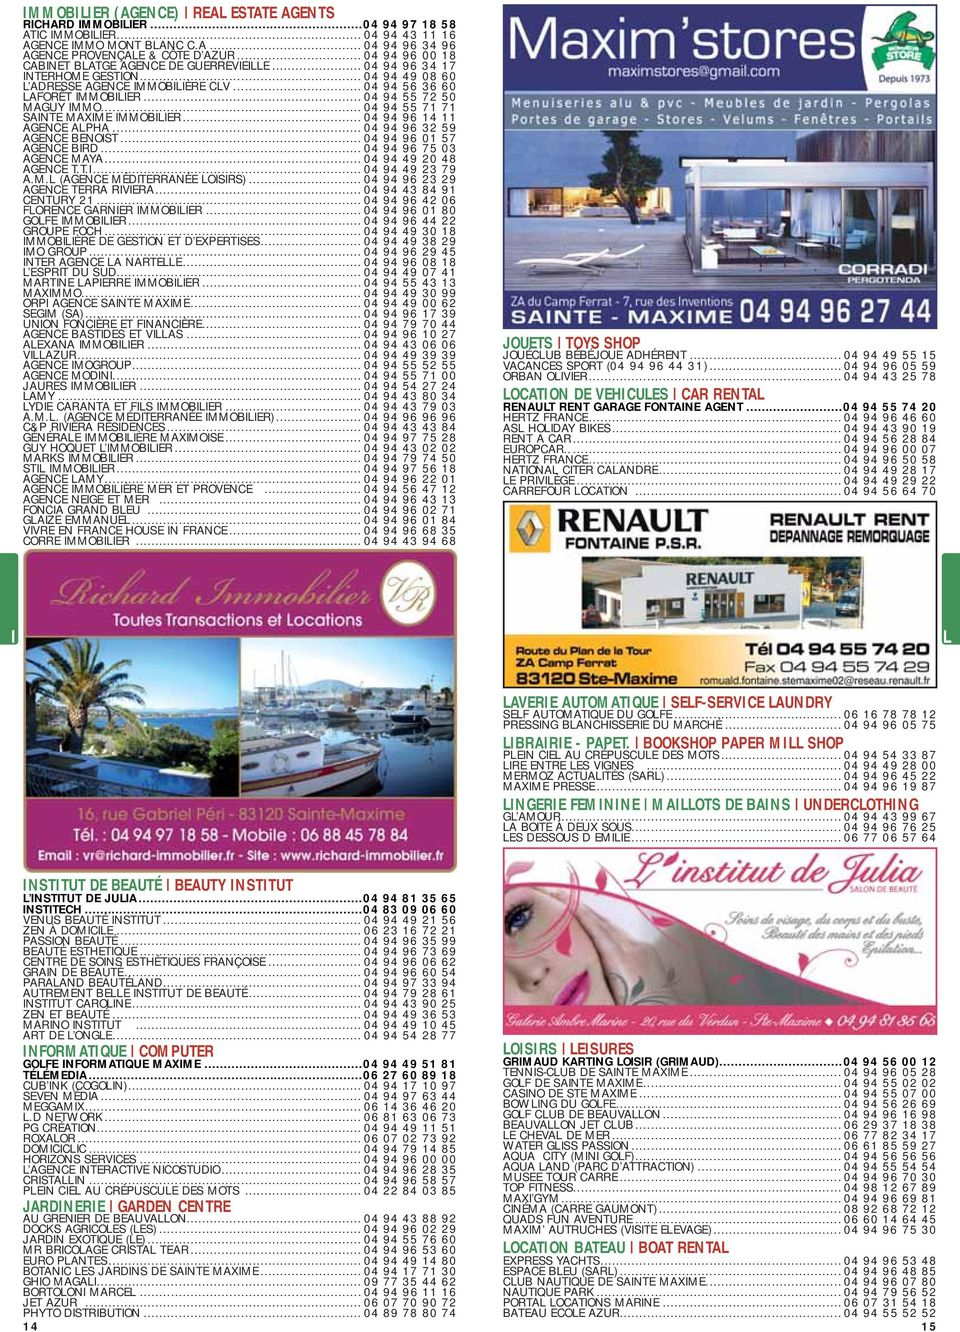 .. 04 94 55 72 50 MAGUY IMMO... 04 94 55 71 71 SAINTE MAXIME IMMOBILIER... 04 94 96 14 11 AGENCE ALPHA... 04 94 96 32 59 AGENCE BENOIST... 04 94 96 01 57 AGENCE BIRD... 04 94 96 75 03 AGENCE MAYA.